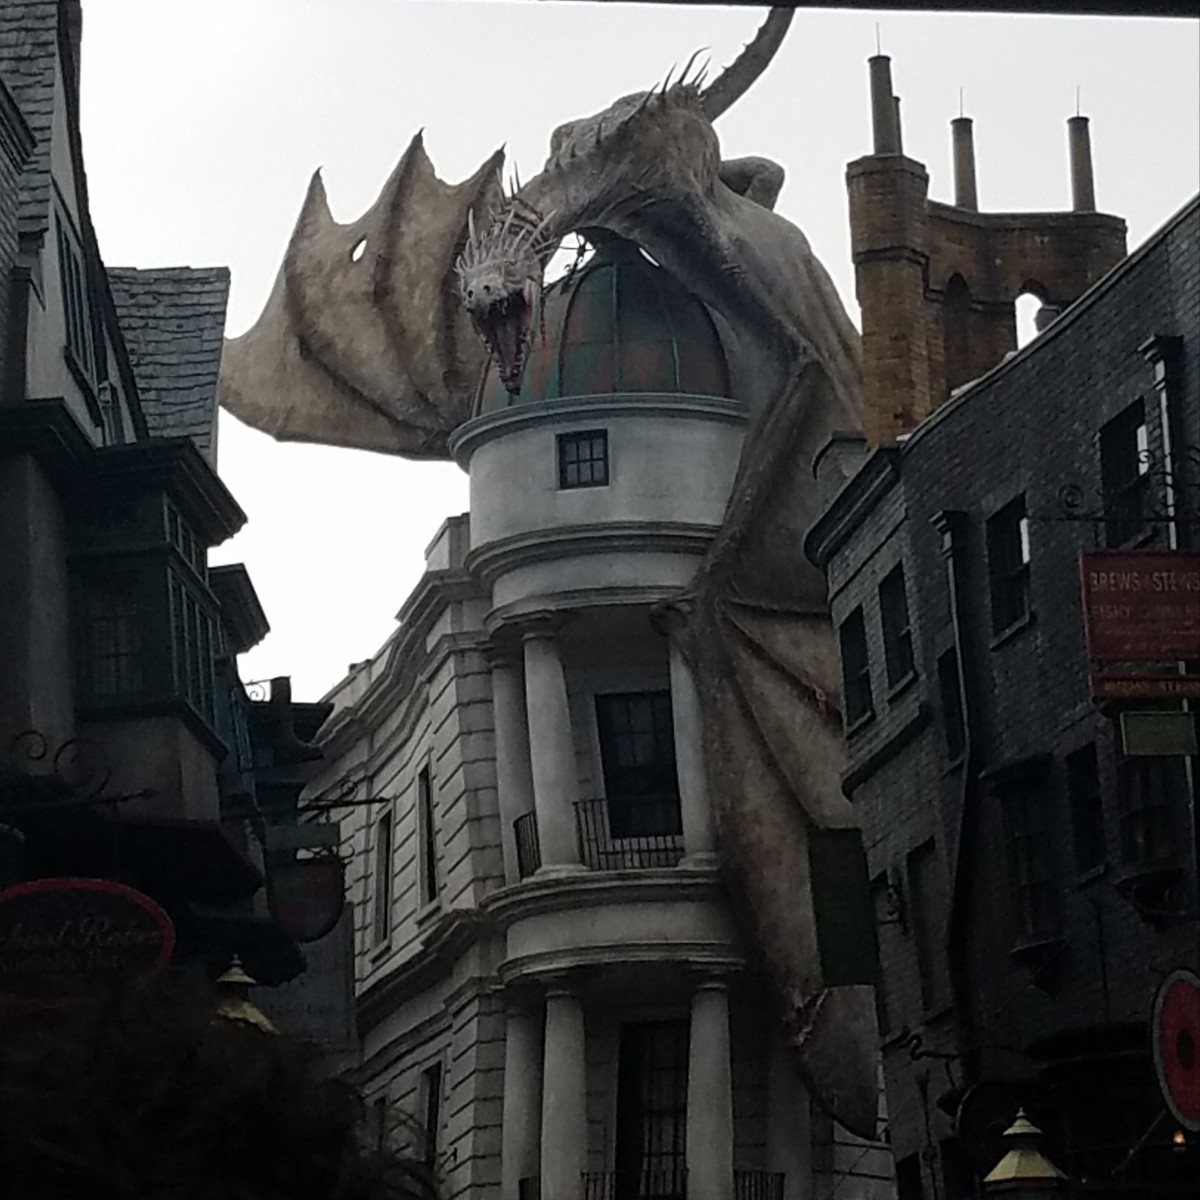 This fire-breathing dragon keeps careful (and angry!) watch over Diagon Alley.